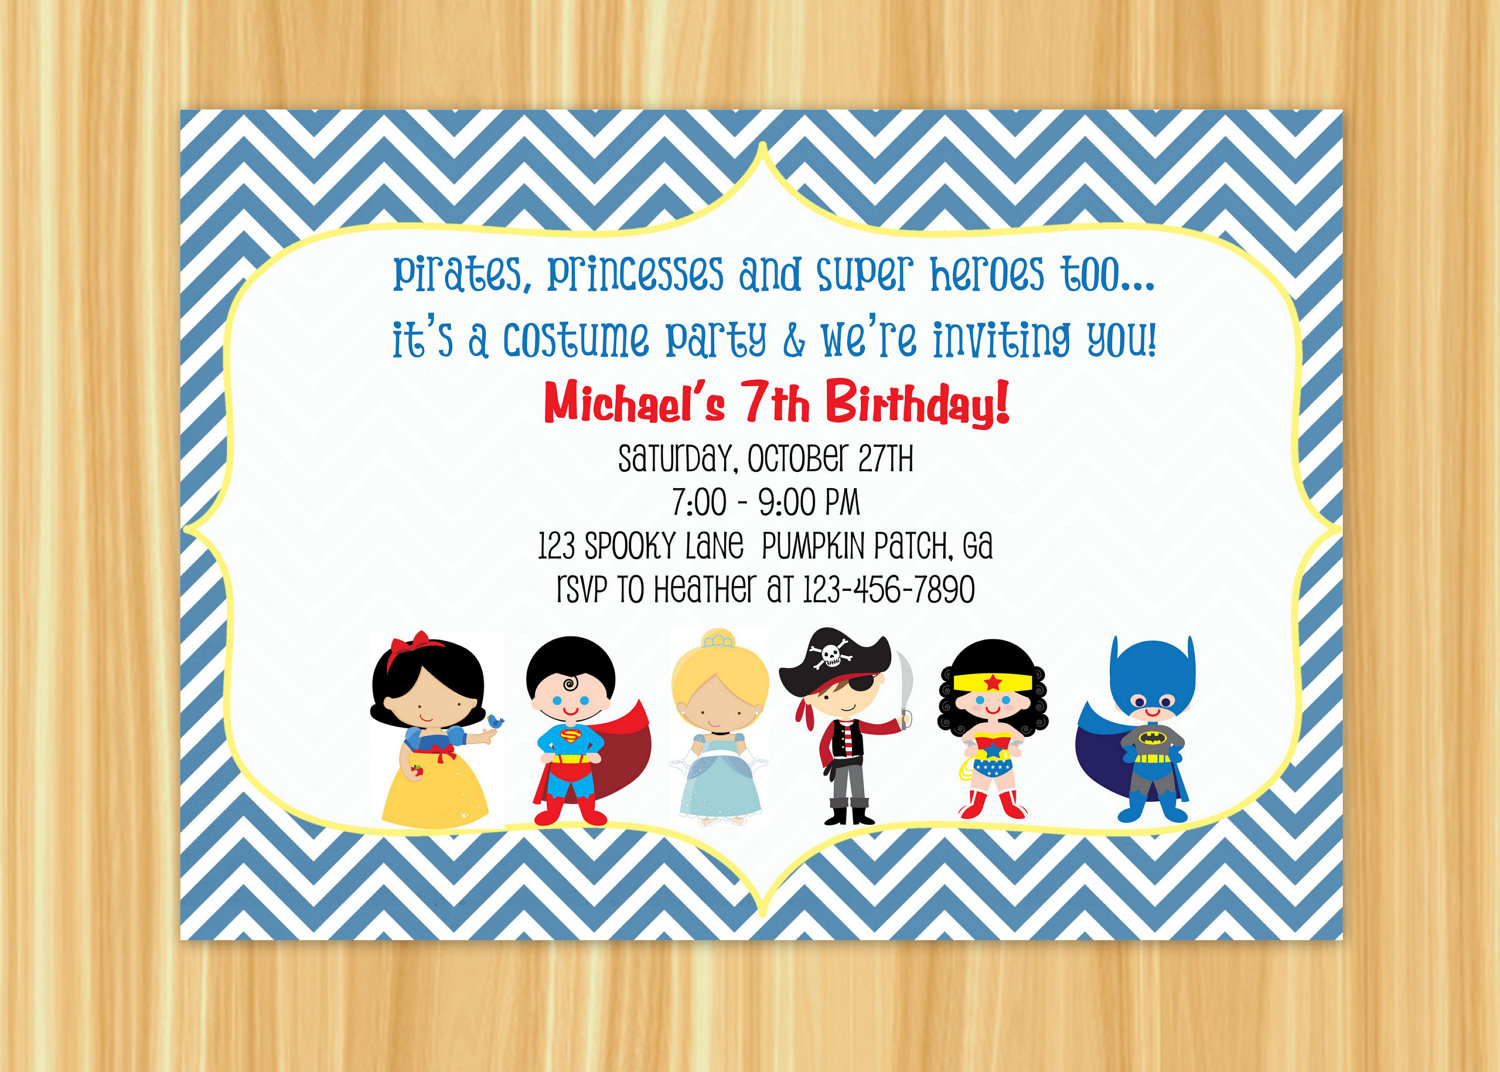 7th birthday party invitation ideas ; Custom-birthday-party-invitations-is-adorable-ideas-which-can-be-applied-into-your-party-invitation-1